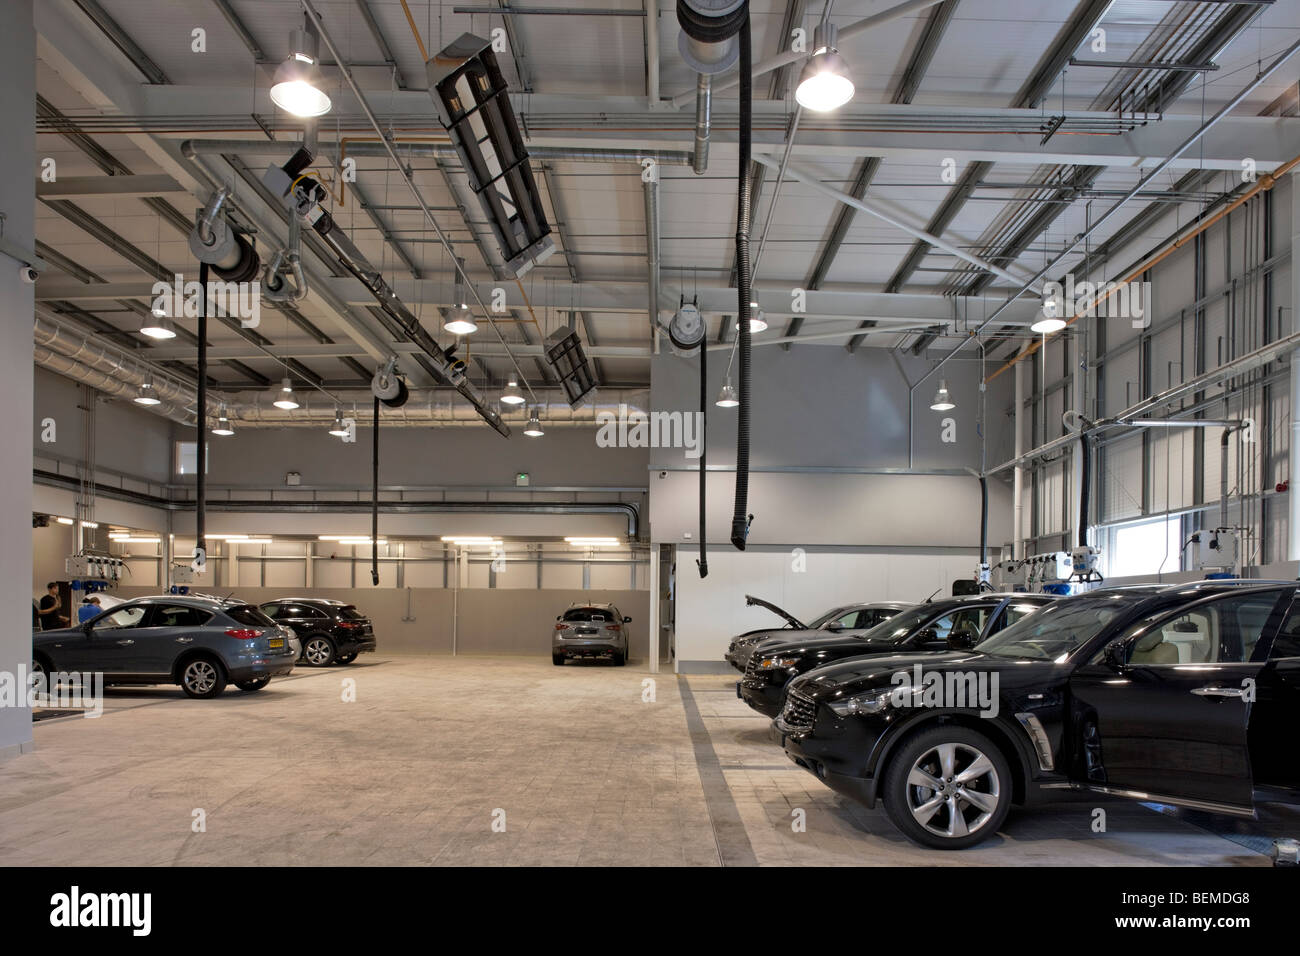 Infiniti Dealer Reading >> Infiniti Car Showroom In Reading Stock Photo 26265240 Alamy